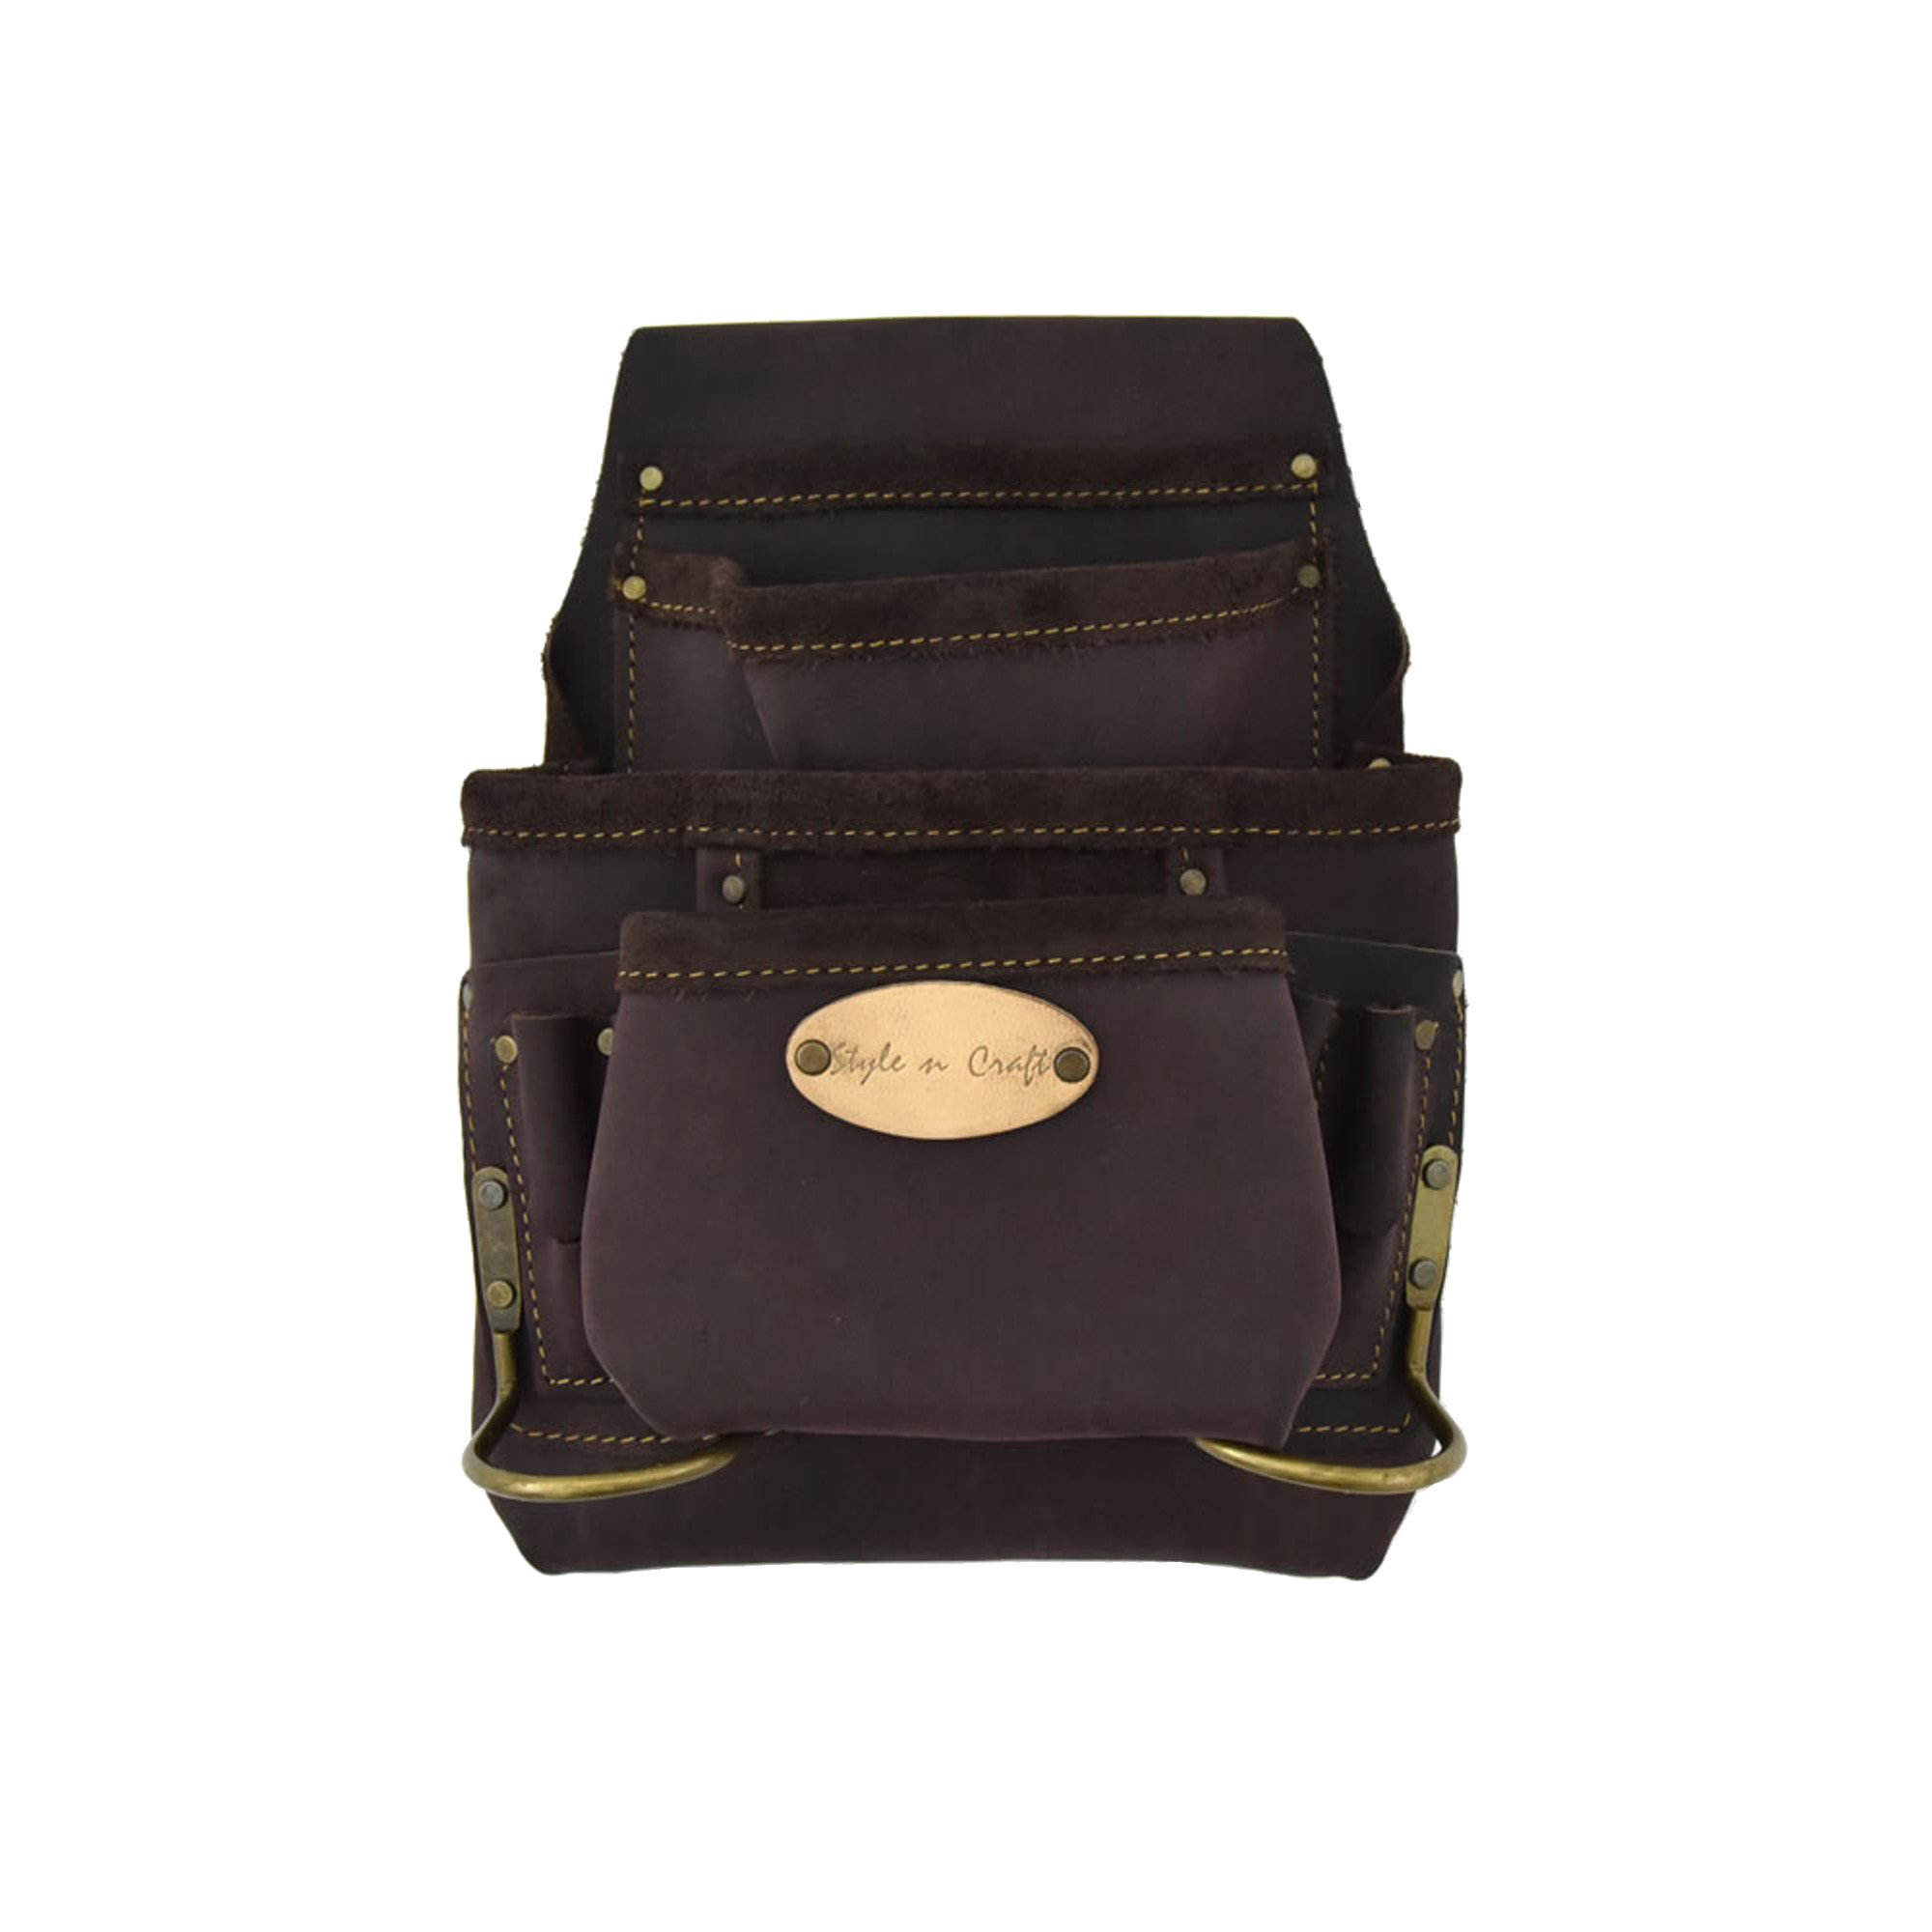 Style n Craft 90-923 10 Pocket Nail and Tool Pouch With 2 Hammer Holders in Oiled Top Grain Leather by Style N Craft